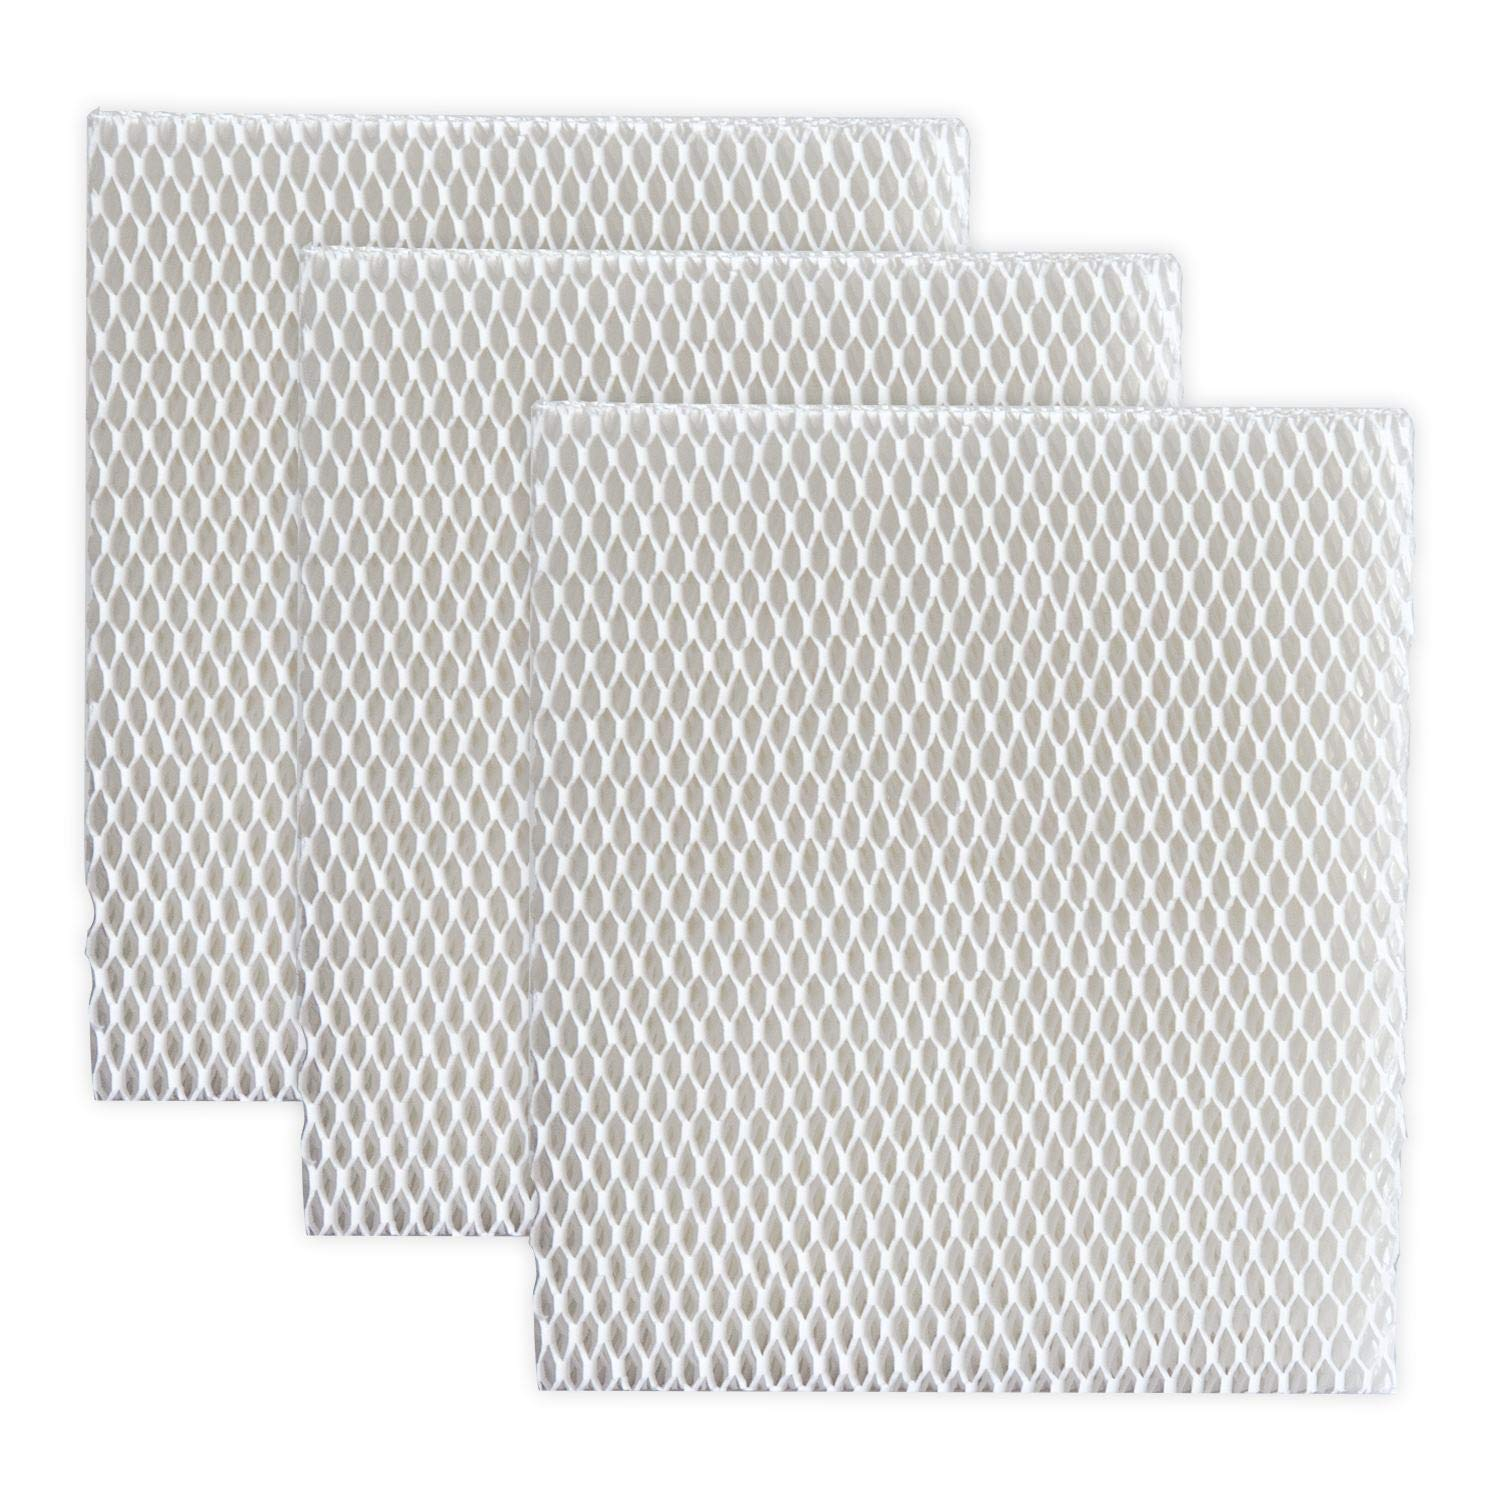 Filter T Made for HEV615 and HEV620 Models. YaoH 3PCS Humidifier Filters Compatible Replacement for HFT600 Humidifier Filter